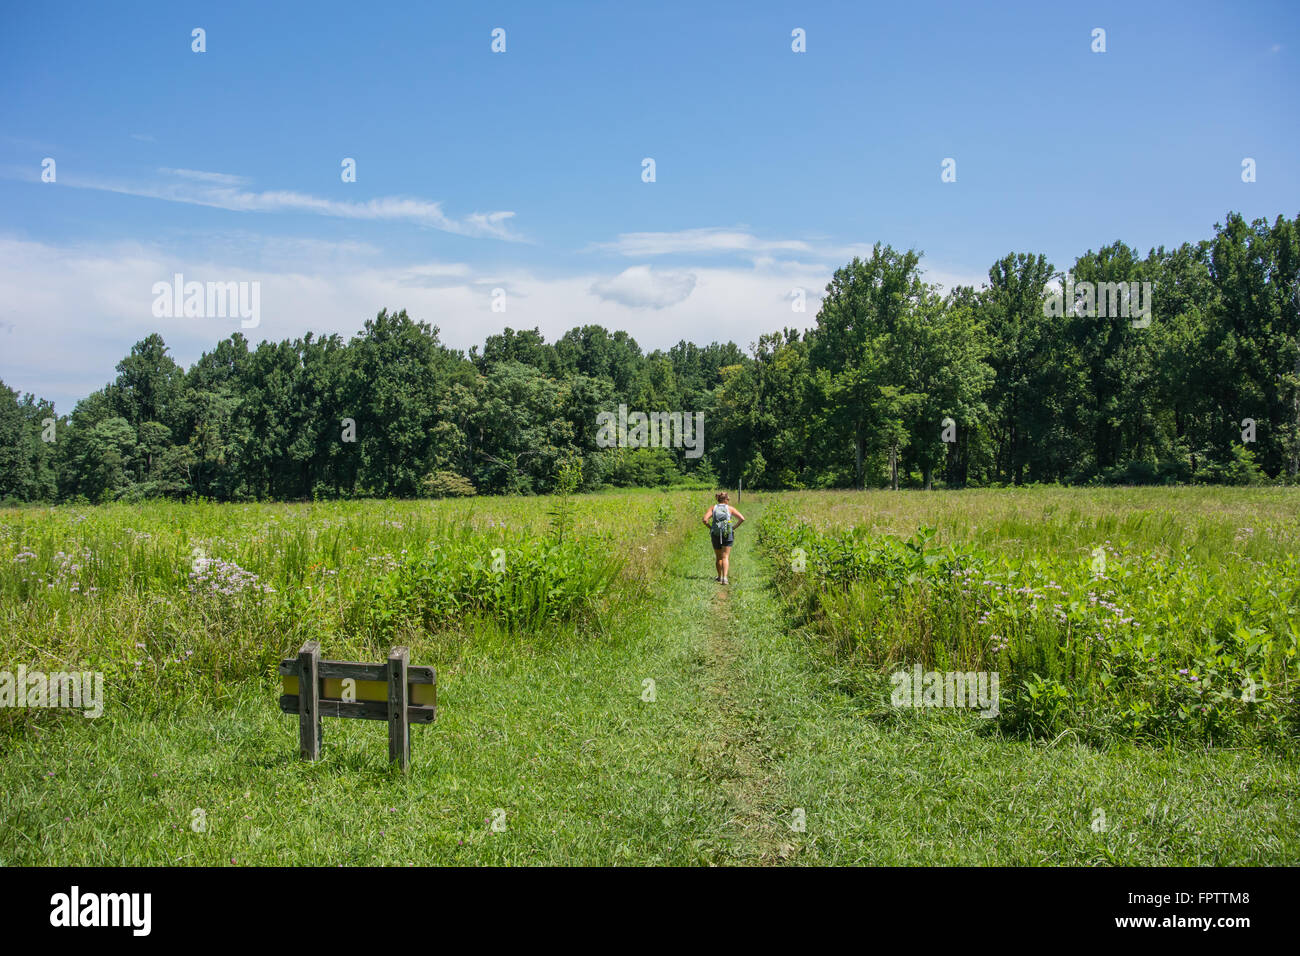 Female hiker through open field in a park in Virginia along the Appalachian Trail - Stock Image